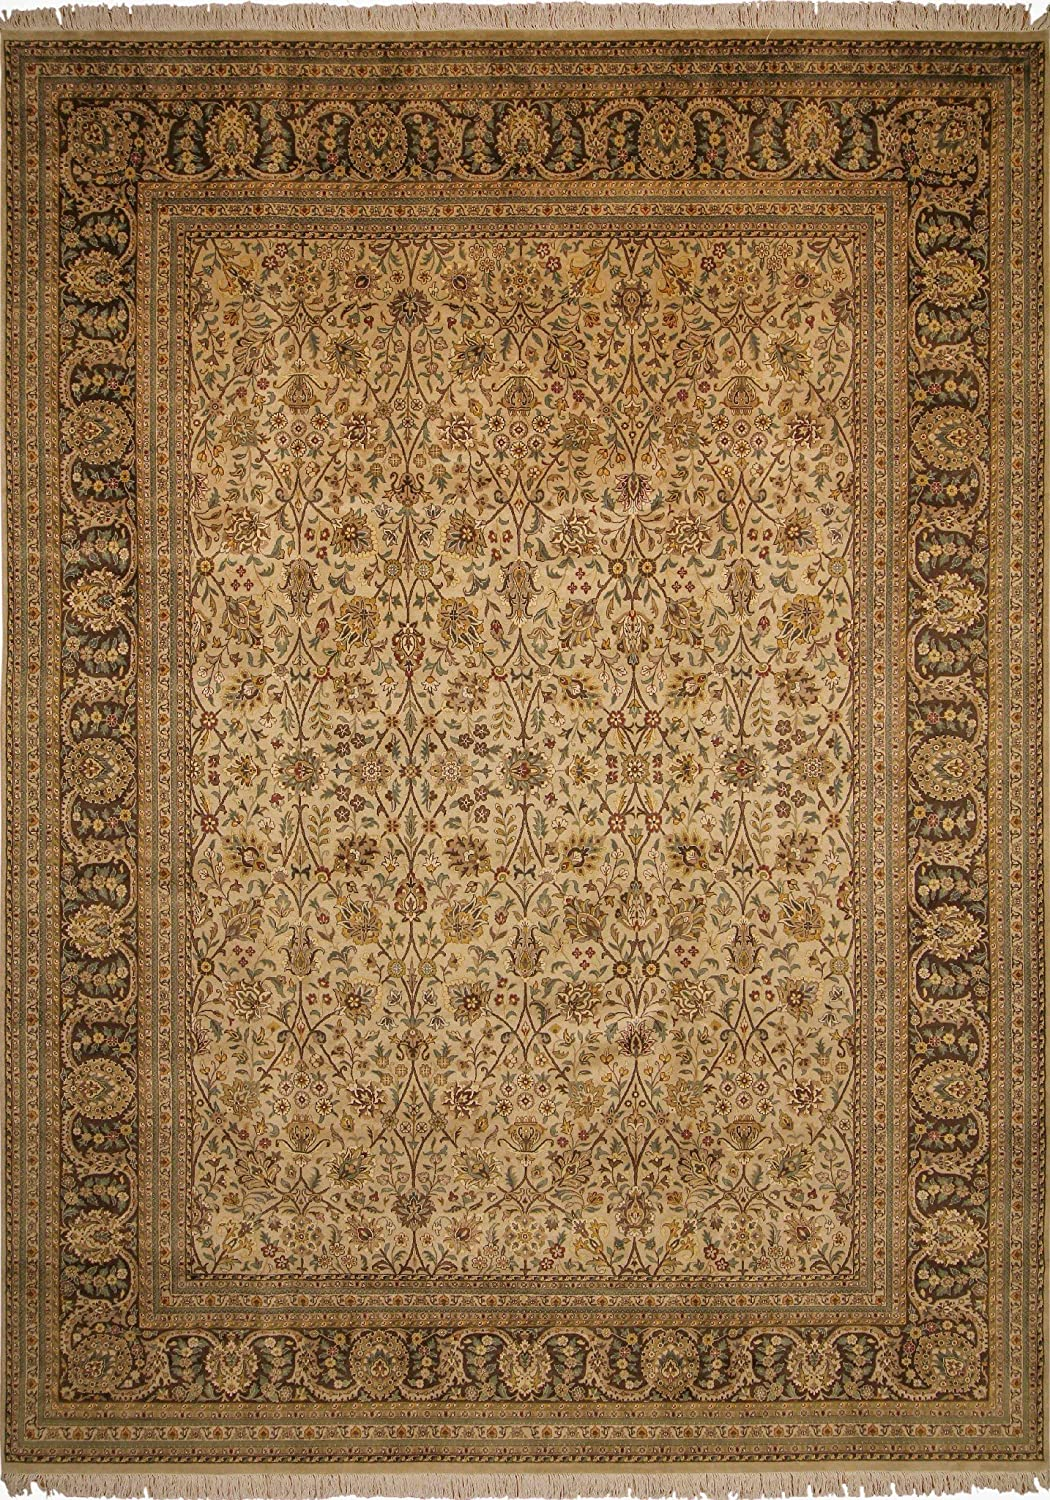 Noori Outlet sale feature Rug Recommended Hand Knotted Area Brown 14'2